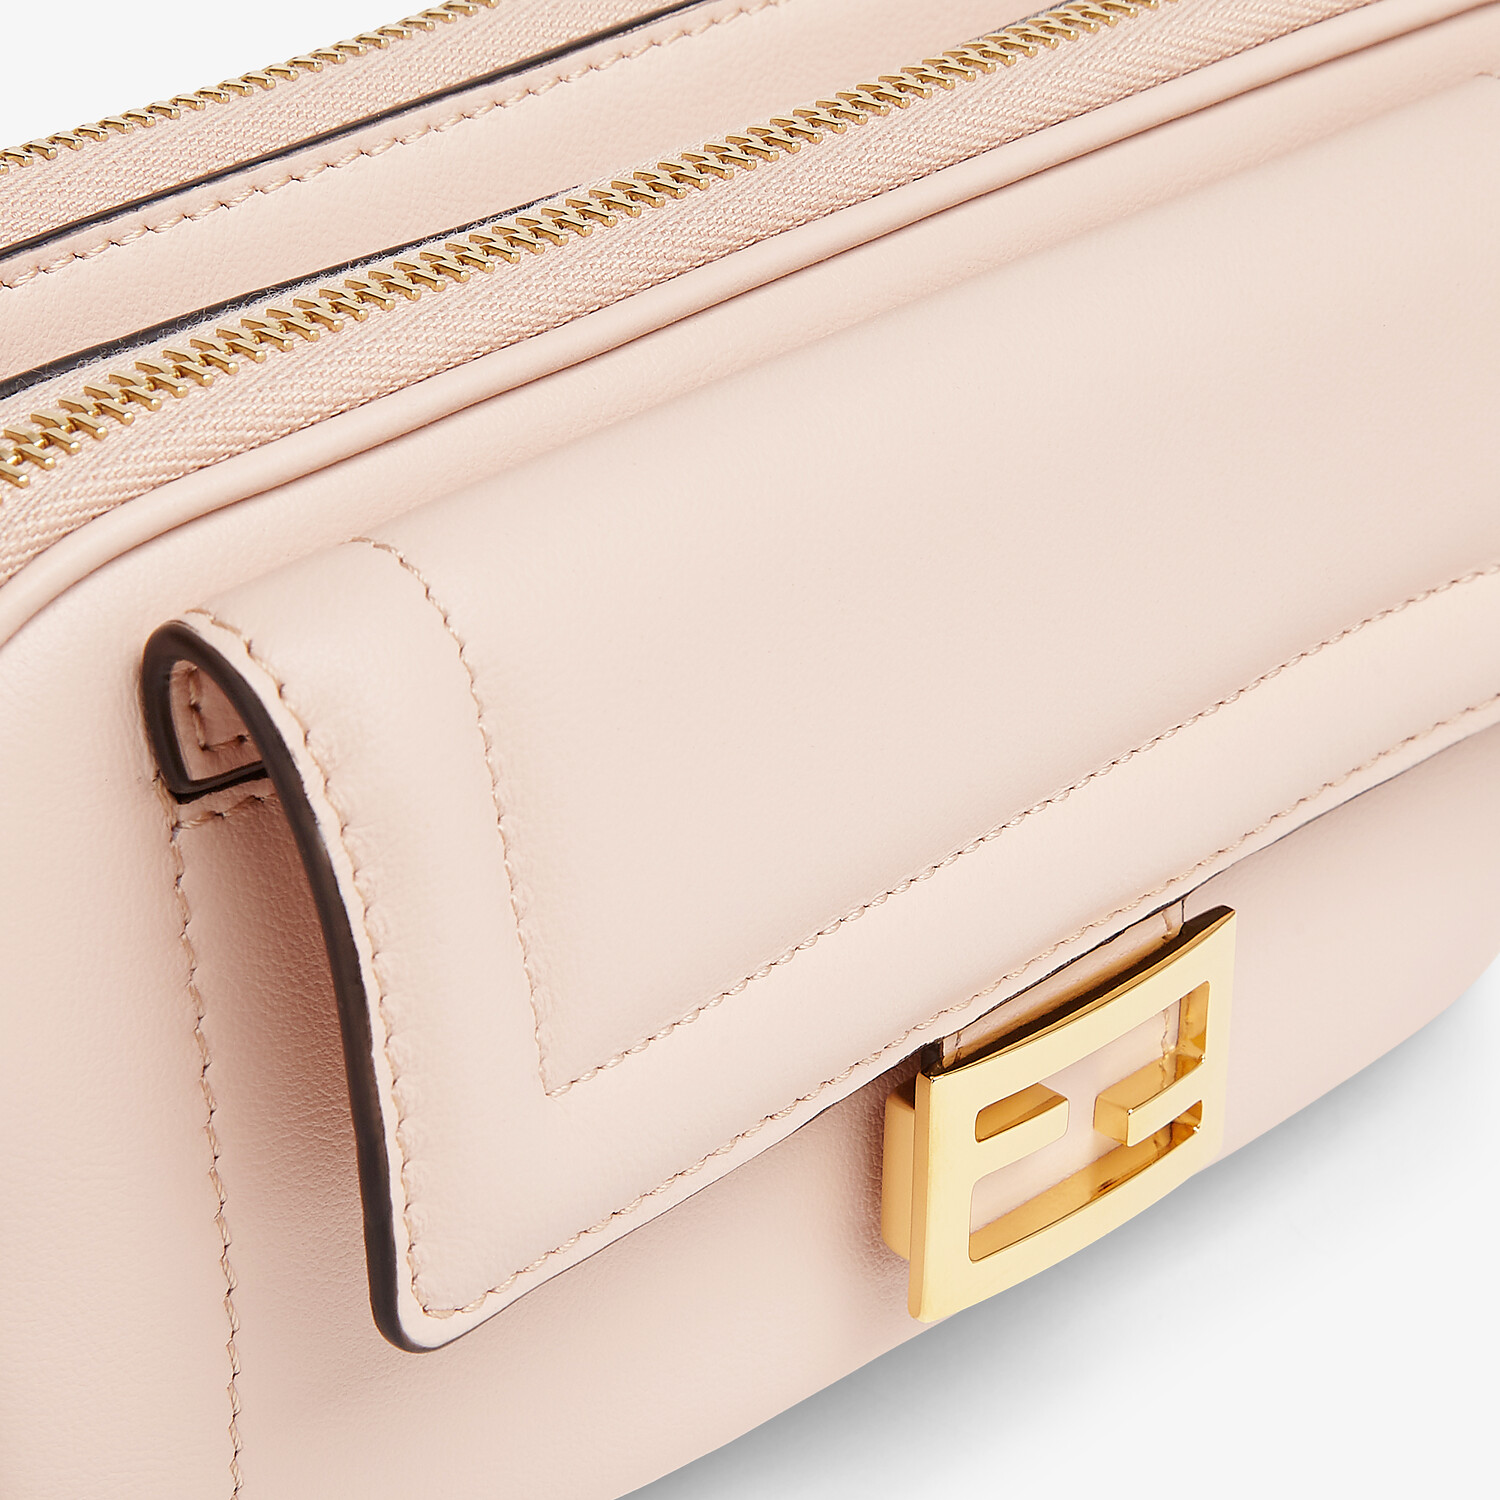 FENDI EASY 2 BAGUETTE - Pink leather mini-bag - view 5 detail